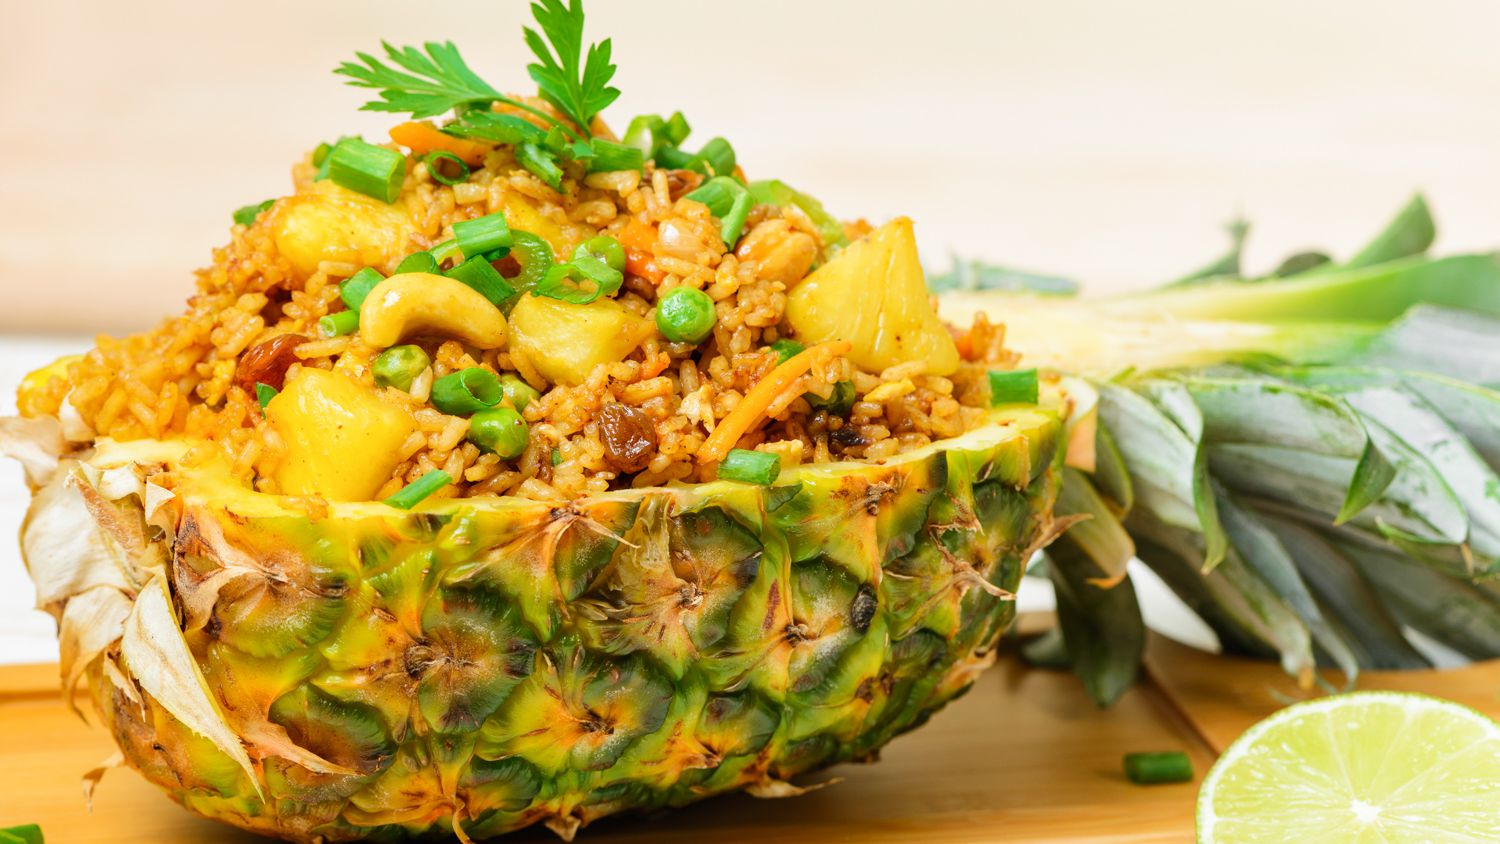 pineapple fried rice is a healthy meal